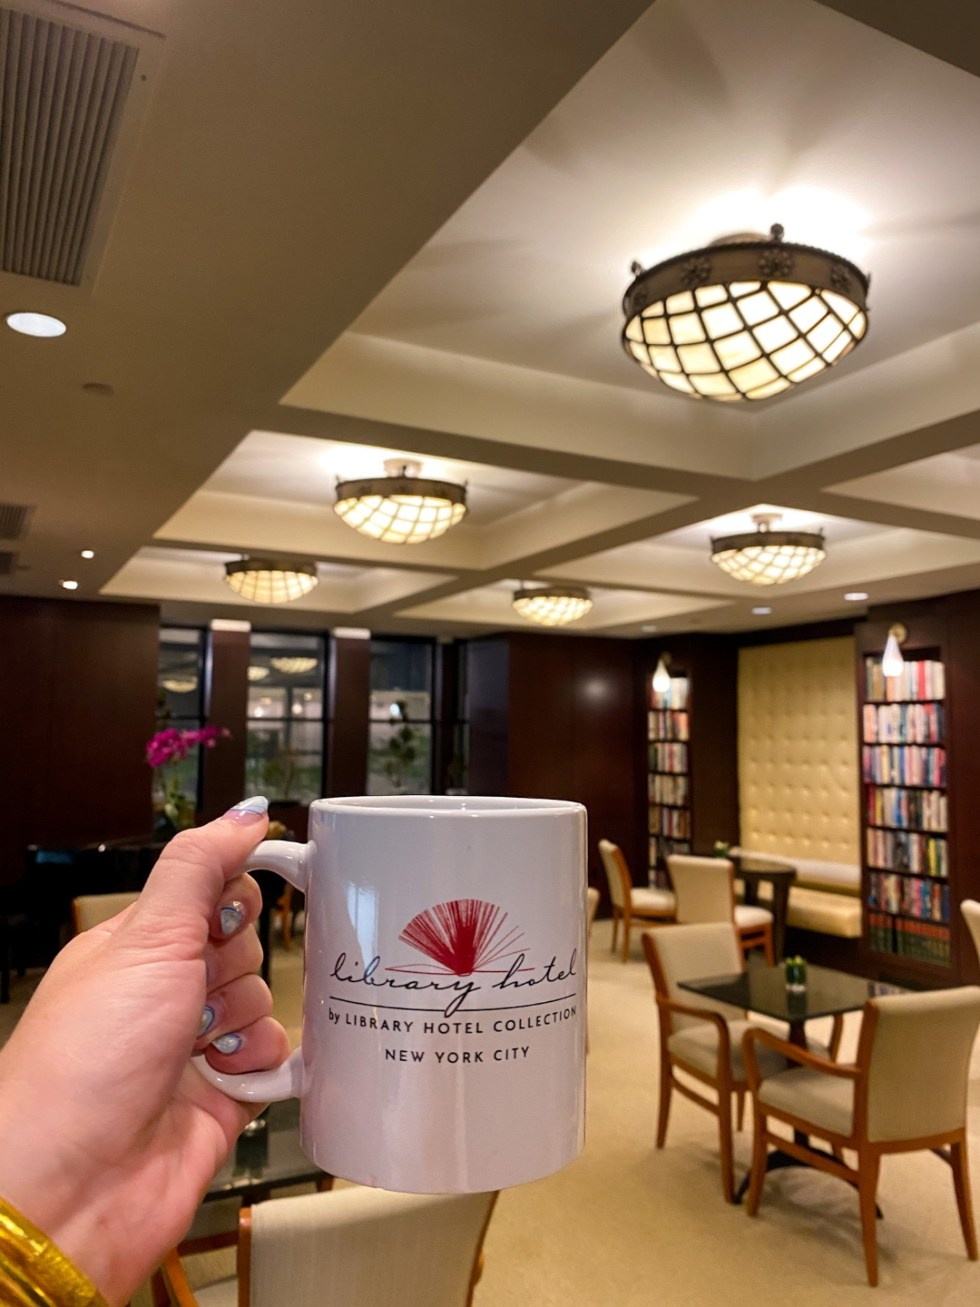 NYC Summer Weekend: Things to Do in NYC in the Summer - I'm Fixin' To - @imfixintoblog   NYC Summer Weekend by popular NC travel blog, I'm Fixin' To: image of a woman holding a library hotel mug.